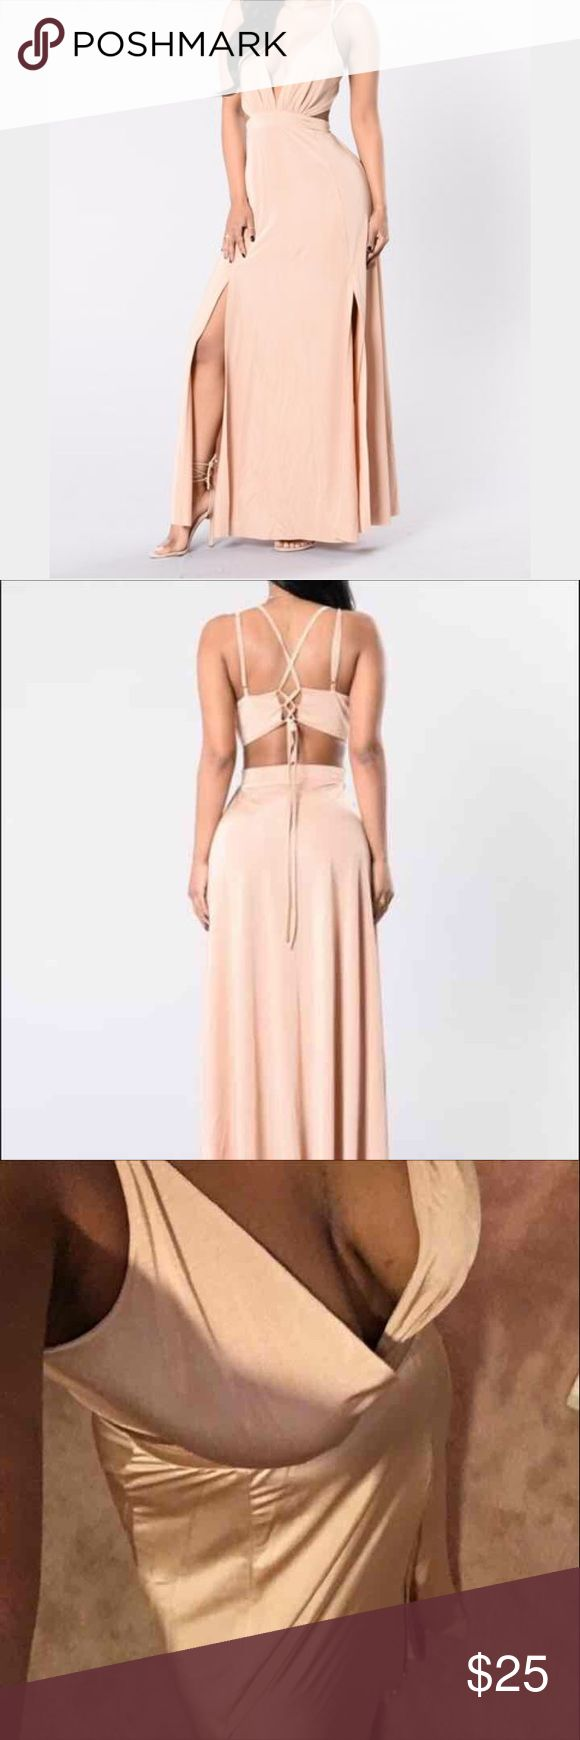 FASHION NOVA HYMN FOR THE WEEKEND DRESS Brand new. Saying dress good for a bridesmaids gown or a nice elegant evening out to a ball on something. It is very long I am 5'3 and it was dragging Fashion Nova Dresses Maxi